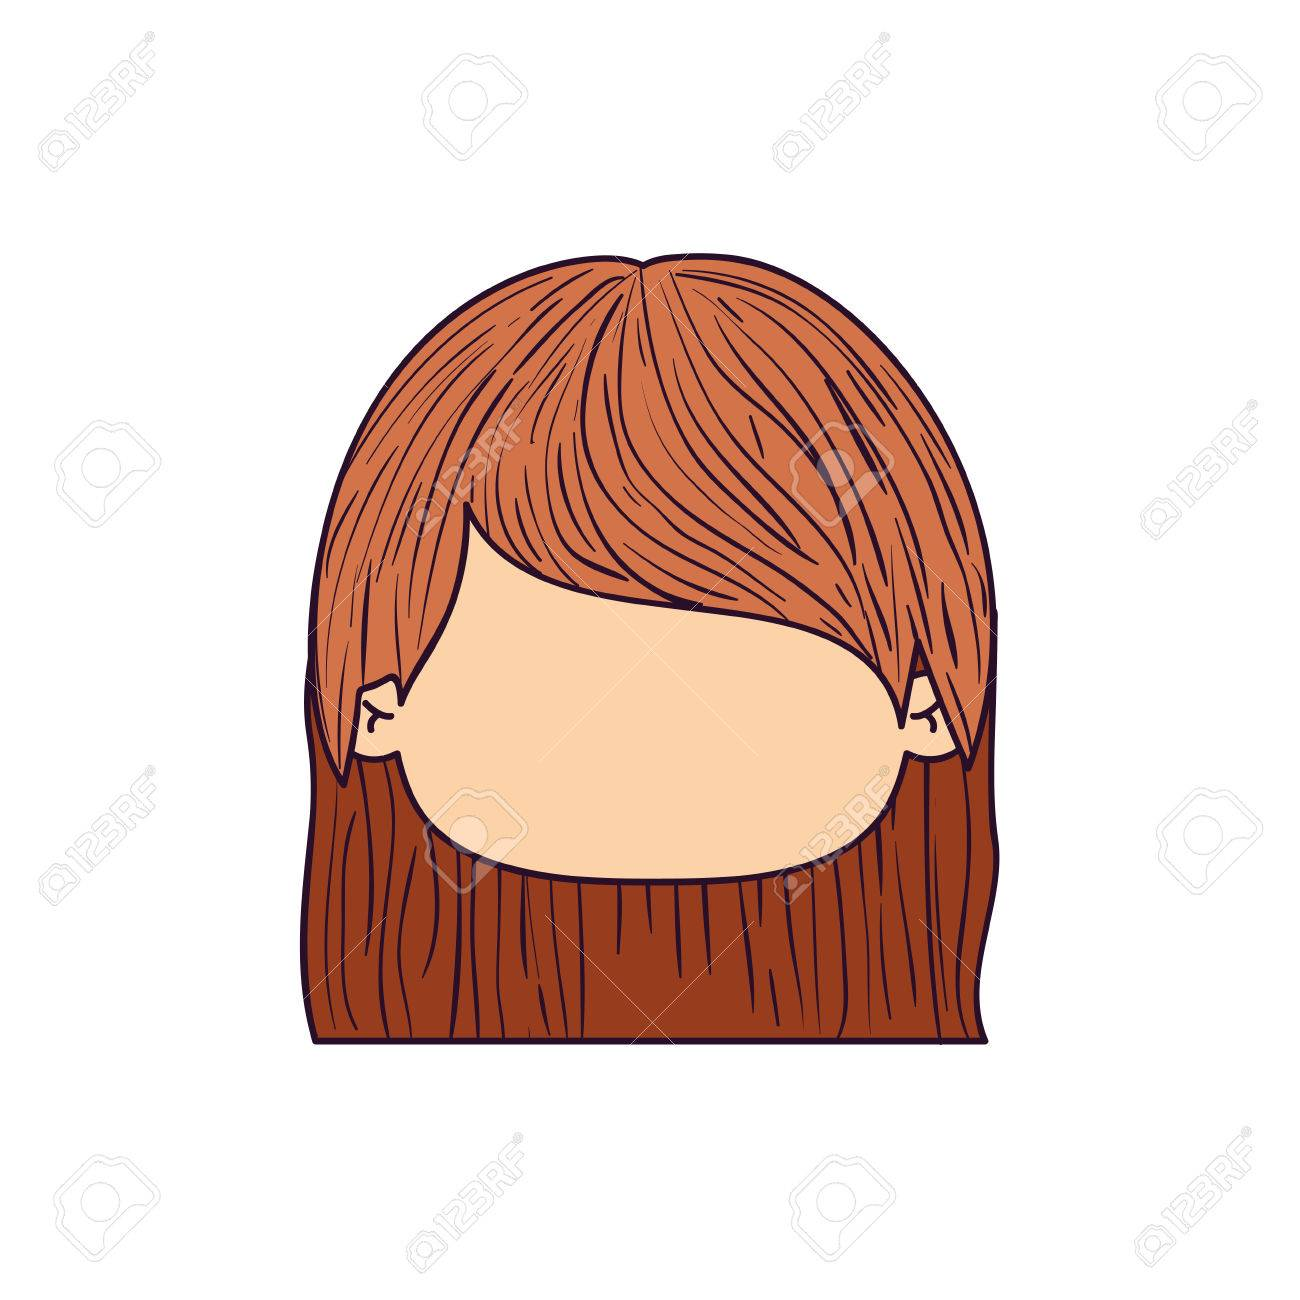 Colorful Caricature Faceless Front View Cute Girl With Short